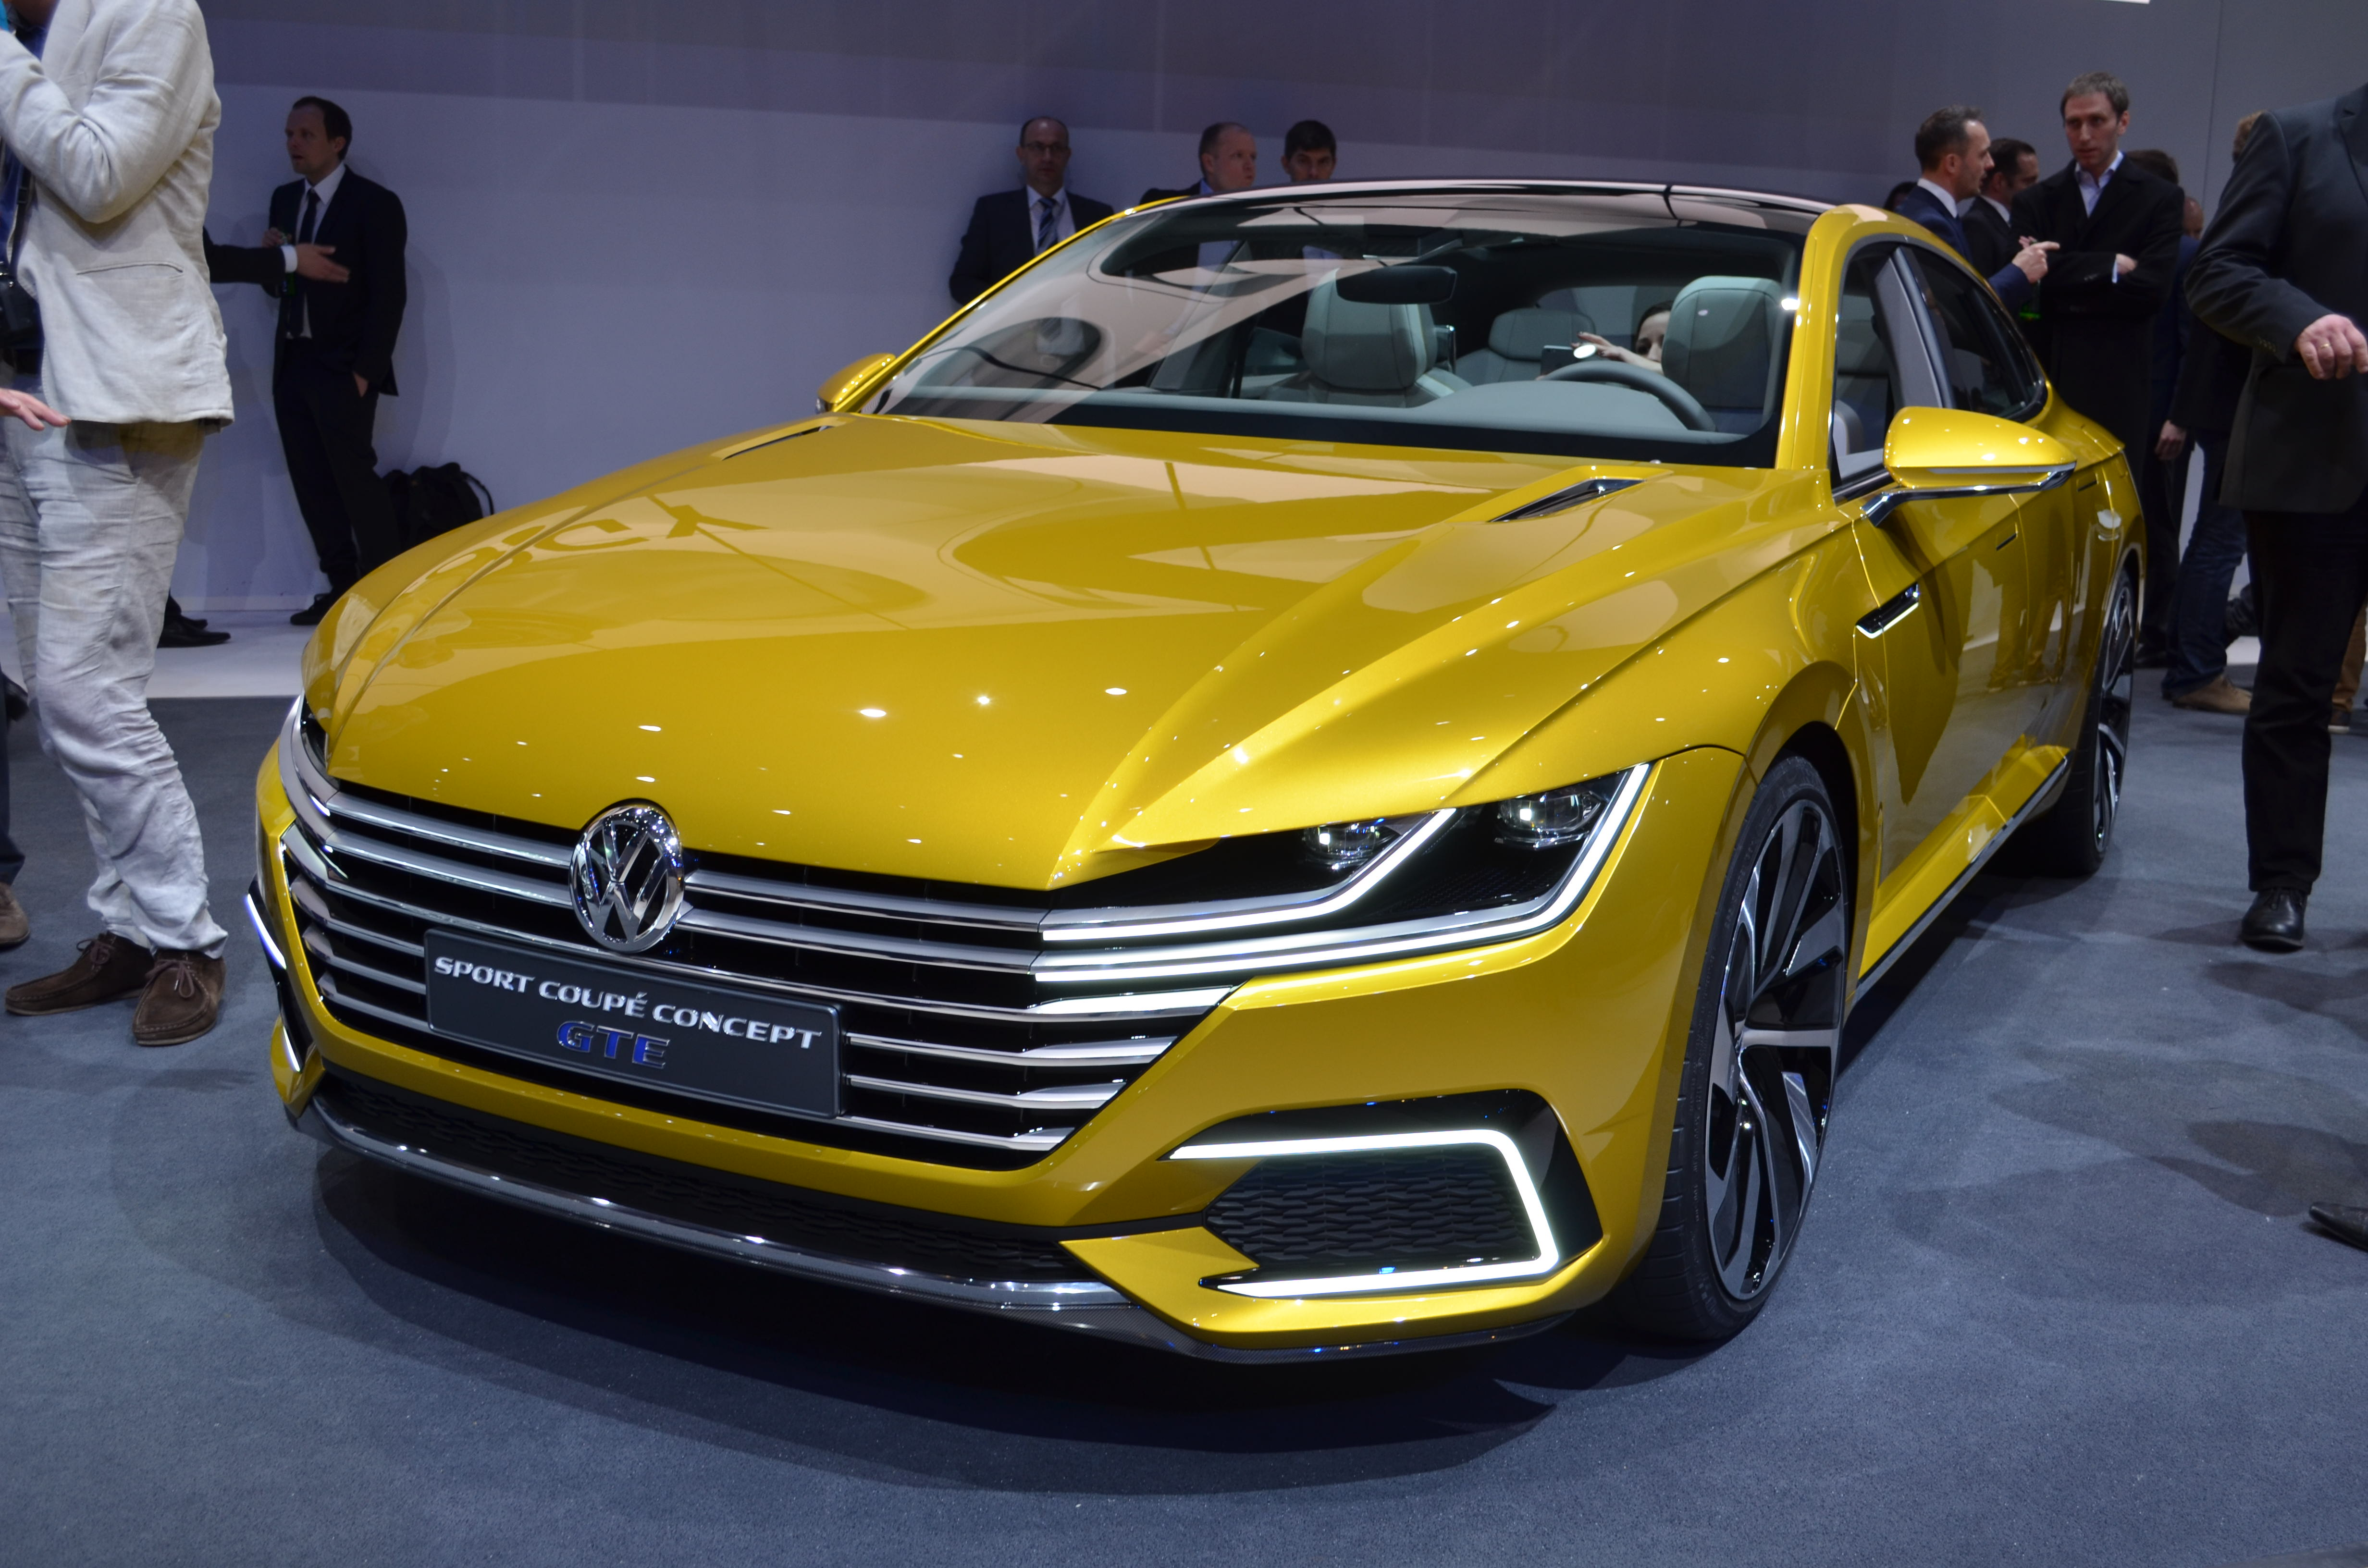 new vw four door coupe concept to debut in geneva could preview the next cc clublexus lexus. Black Bedroom Furniture Sets. Home Design Ideas